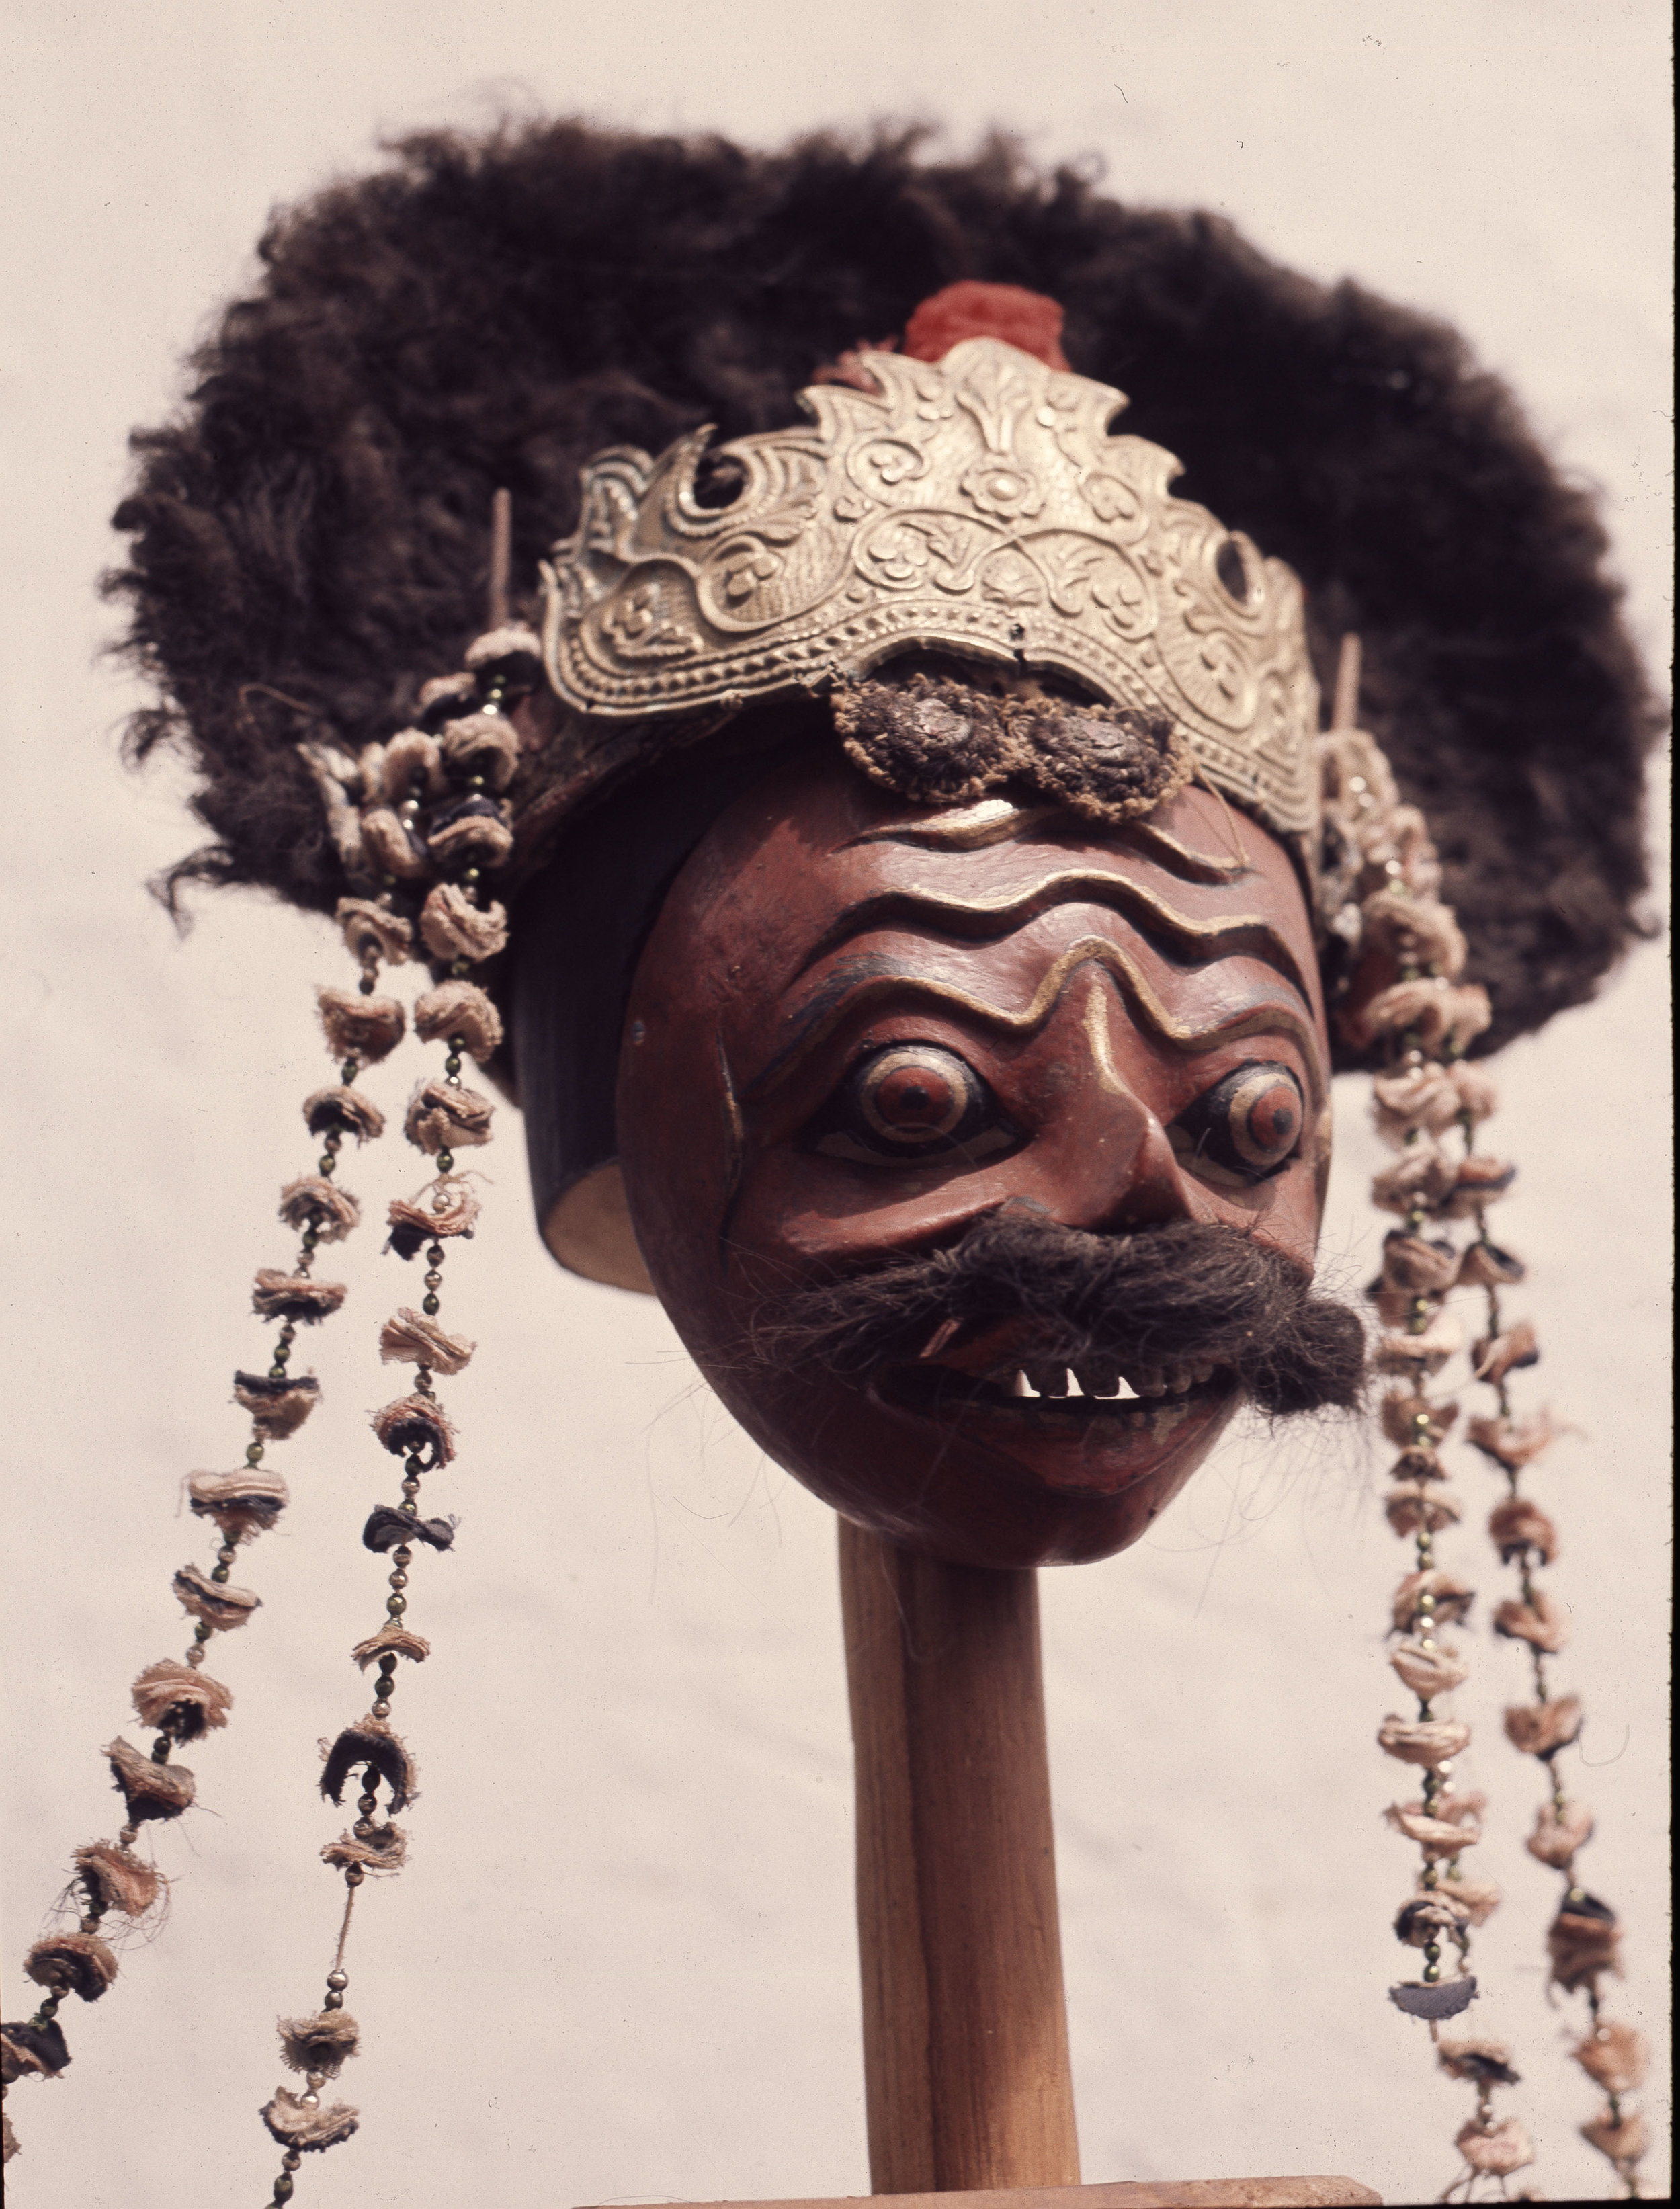 A mask used in wayang wong performances of the Hindu epics, especially the Ramayana. Wayang wong is still performed but is today less popular than shadow puppet wayang theatre. Country of Origin: Indonesia. Culture: Javanese. Date/Period: late 19th - 20th C. Place of Origin: Yogjakarta, Java. Material Size: Wood, paint, fabric, metal. Credit Line: Werner Forman Archive/Palace Museum, Yogjakarta.